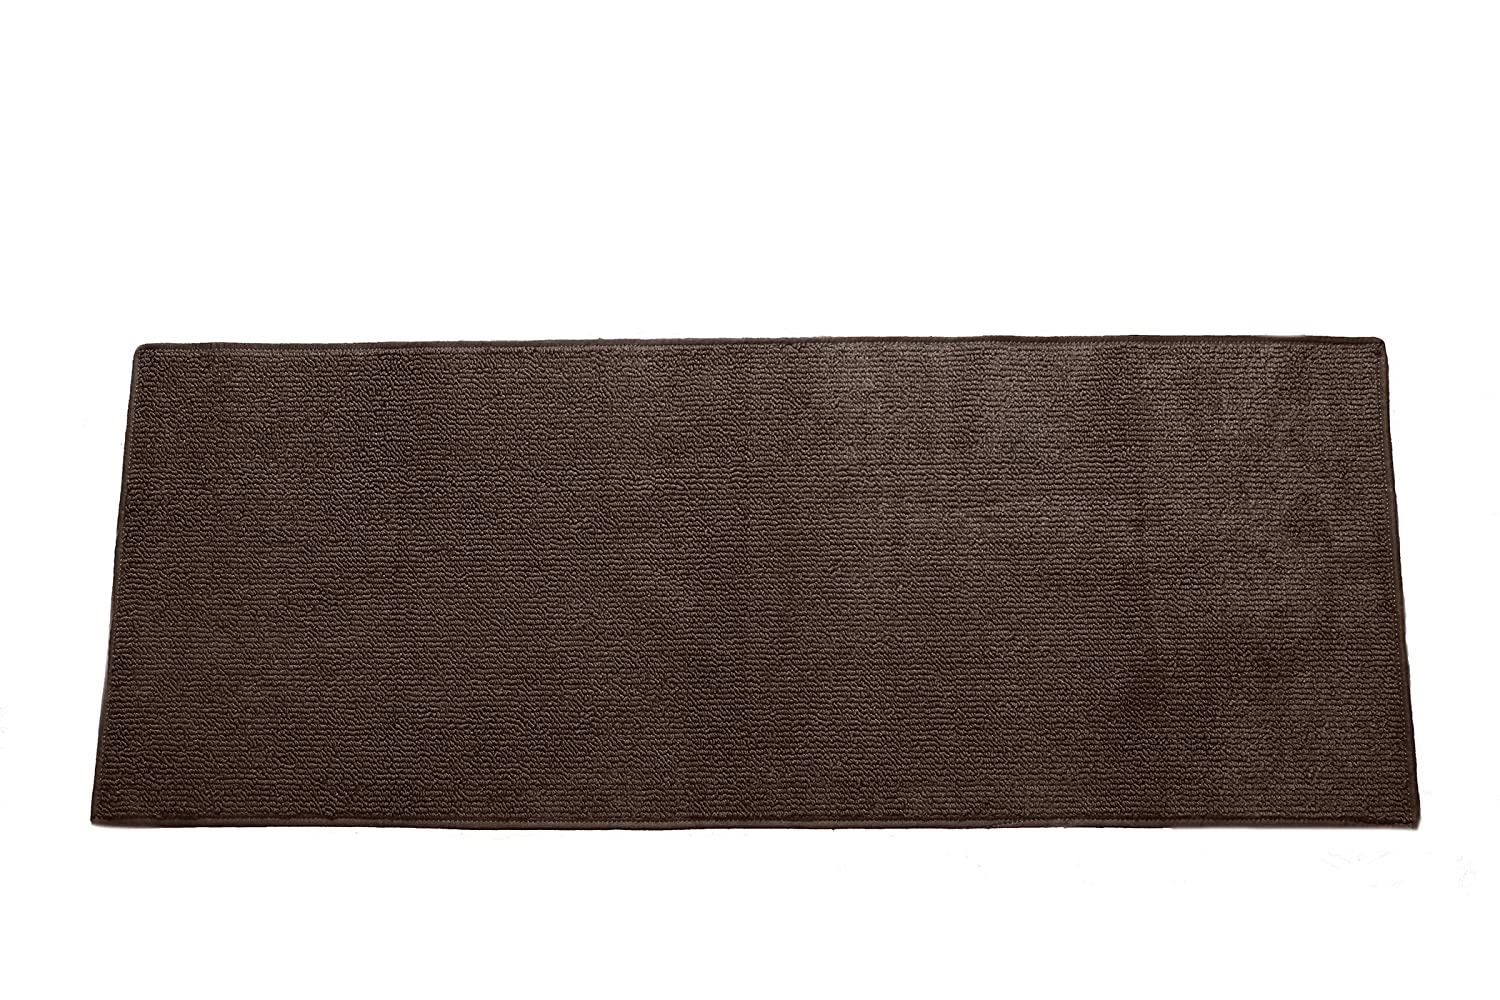 Emerald Wholesale Solid Berber Carpet Runner Rug/Mat, 22 by 90, Brown 22 by 90 BRUN-2290-BRN